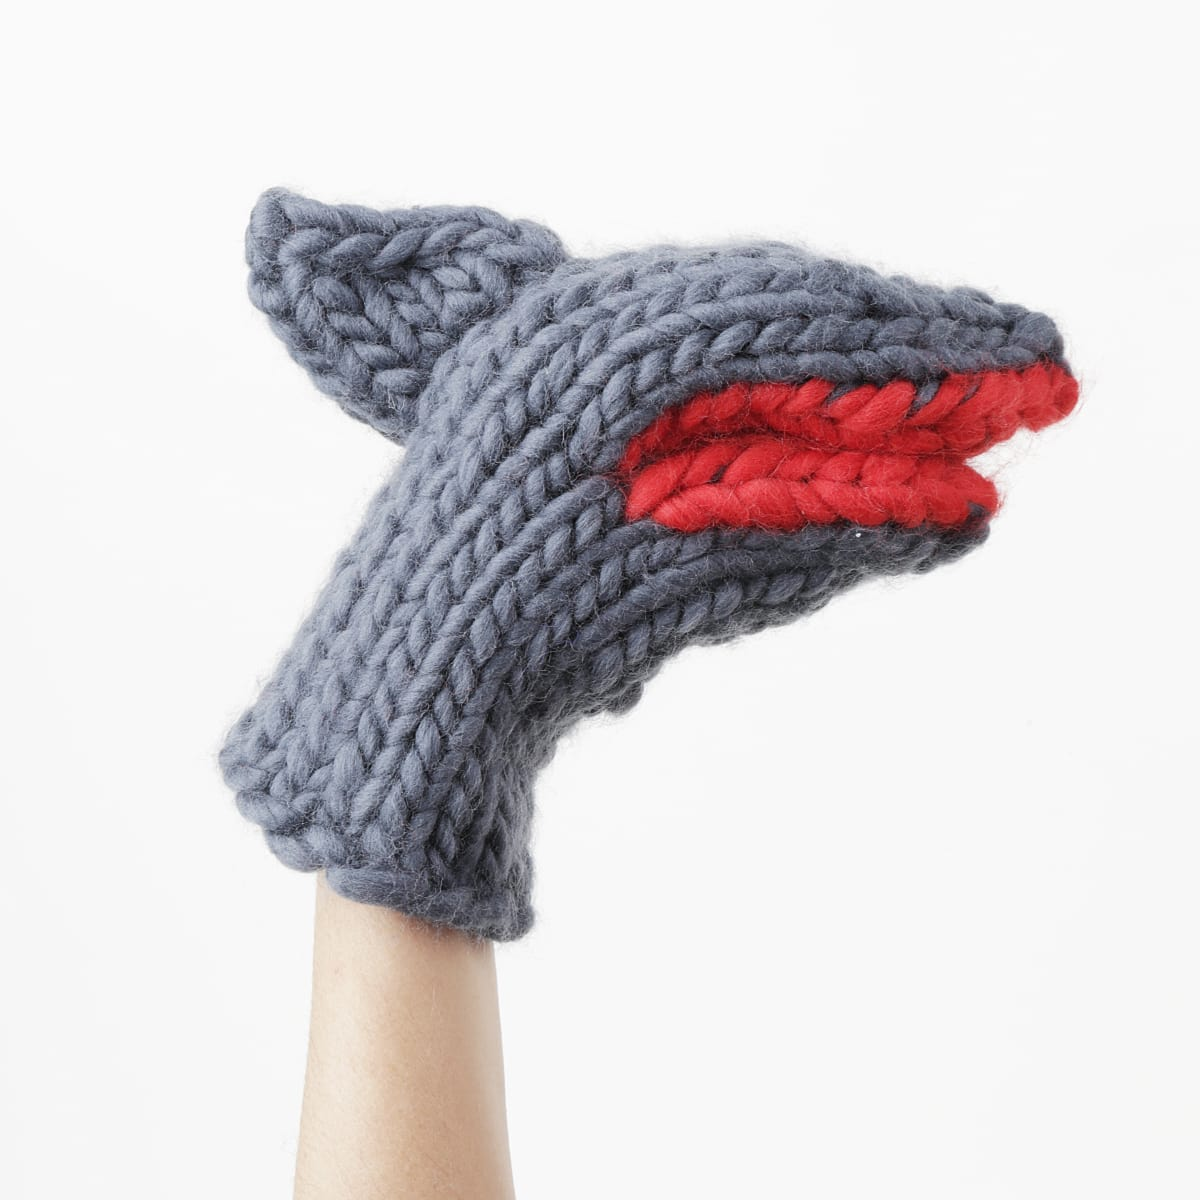 Shark Bruce Knitmitts Wool and the Gang